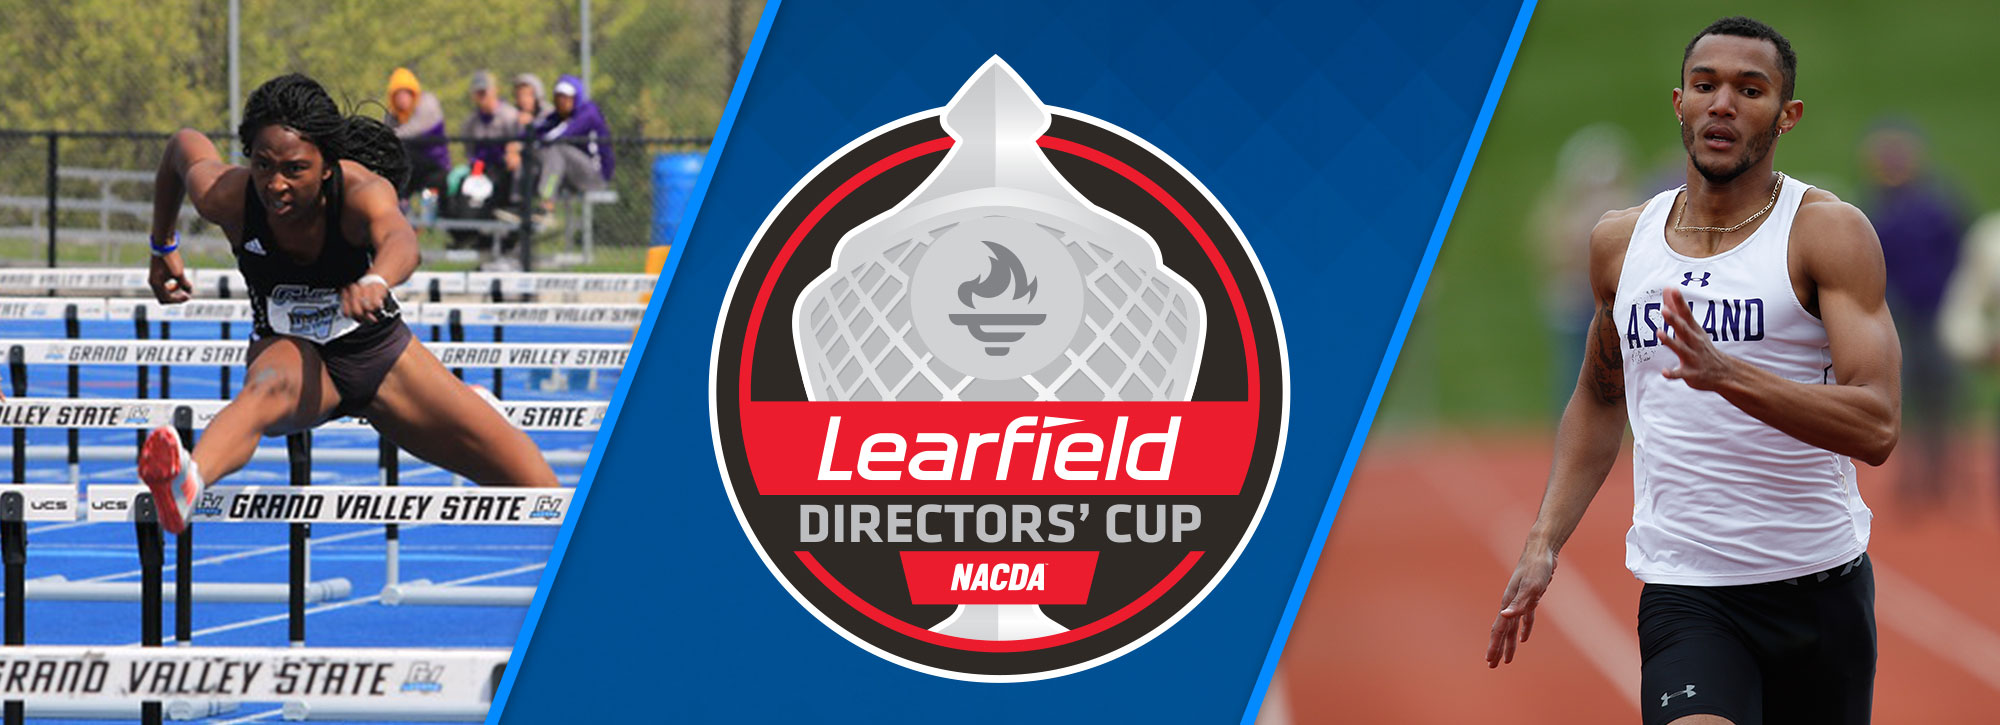 GVSU Finishes Runner-Up in Learfield Sports Directors' Cup Standings; Ashland 12th